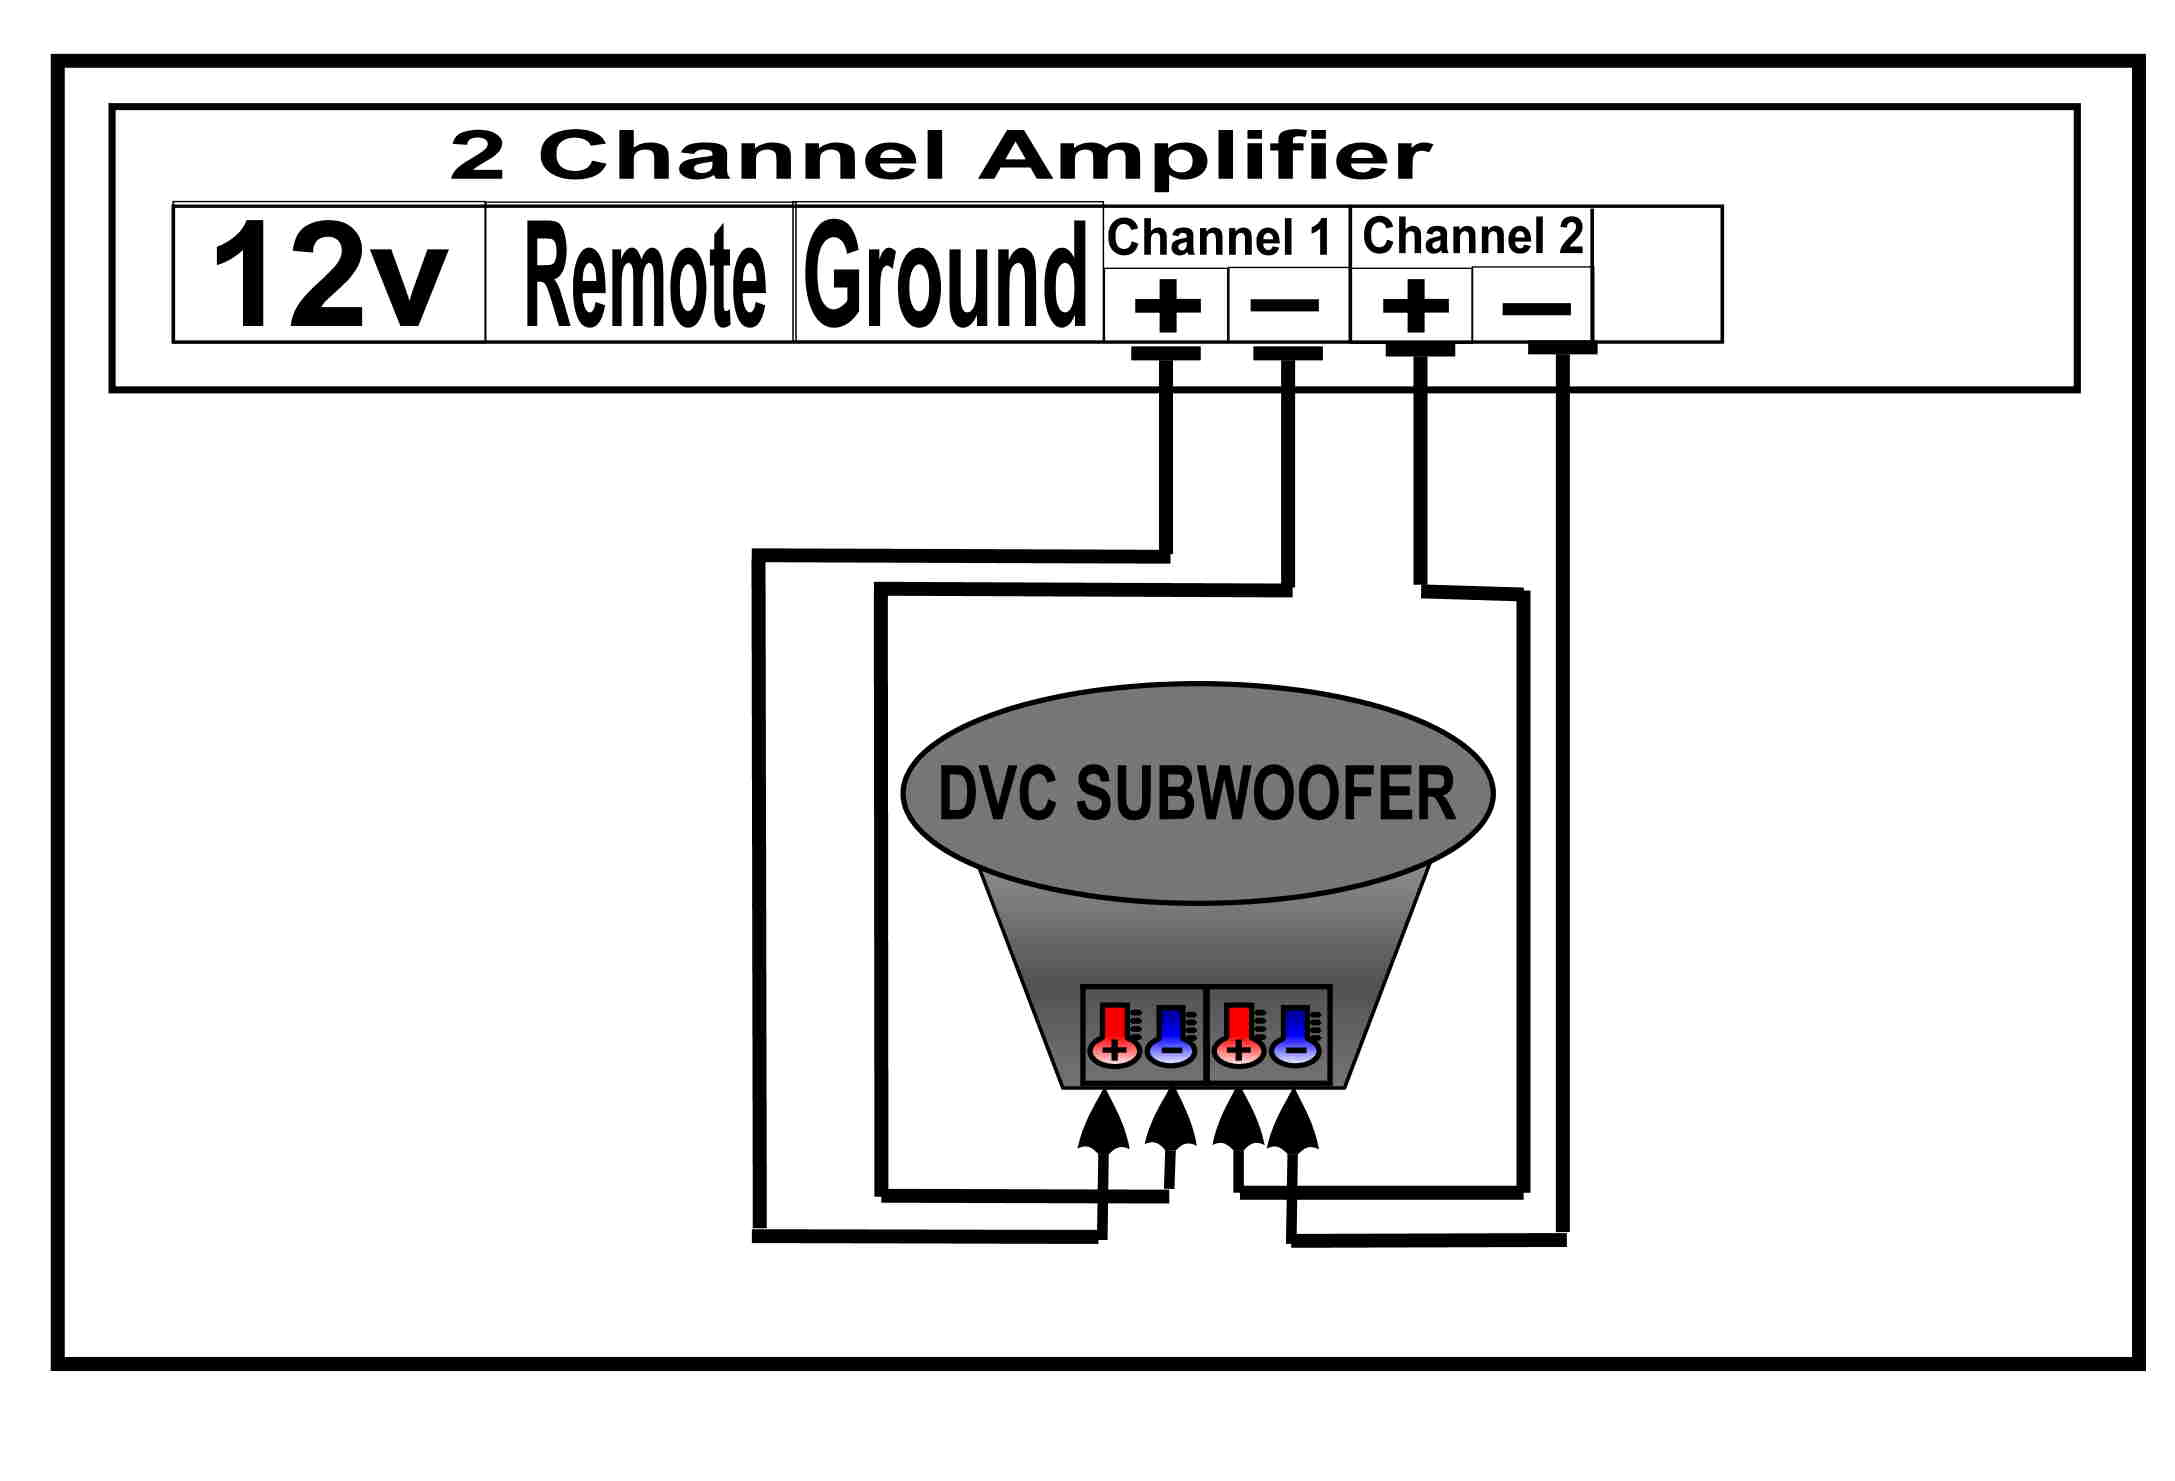 10 Dvc Subwoofer Wiring Diagrams 1channel Diagram